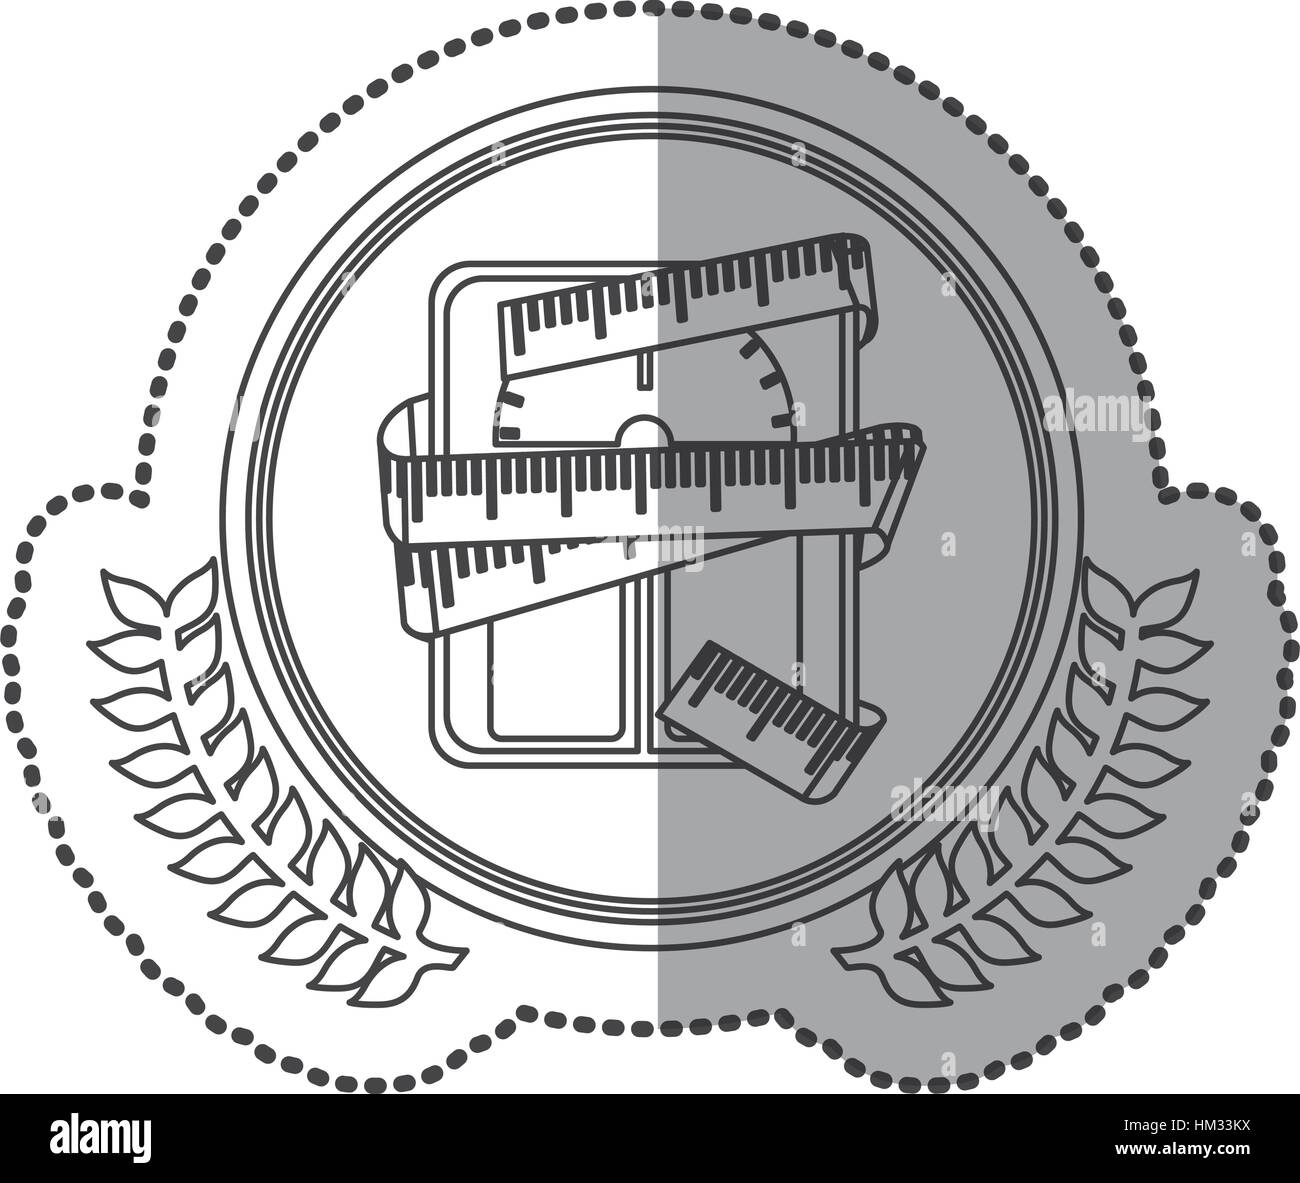 middle shadow sticker monochrome with olive crown with scales for weight control with tape measure around in circle - Stock Image